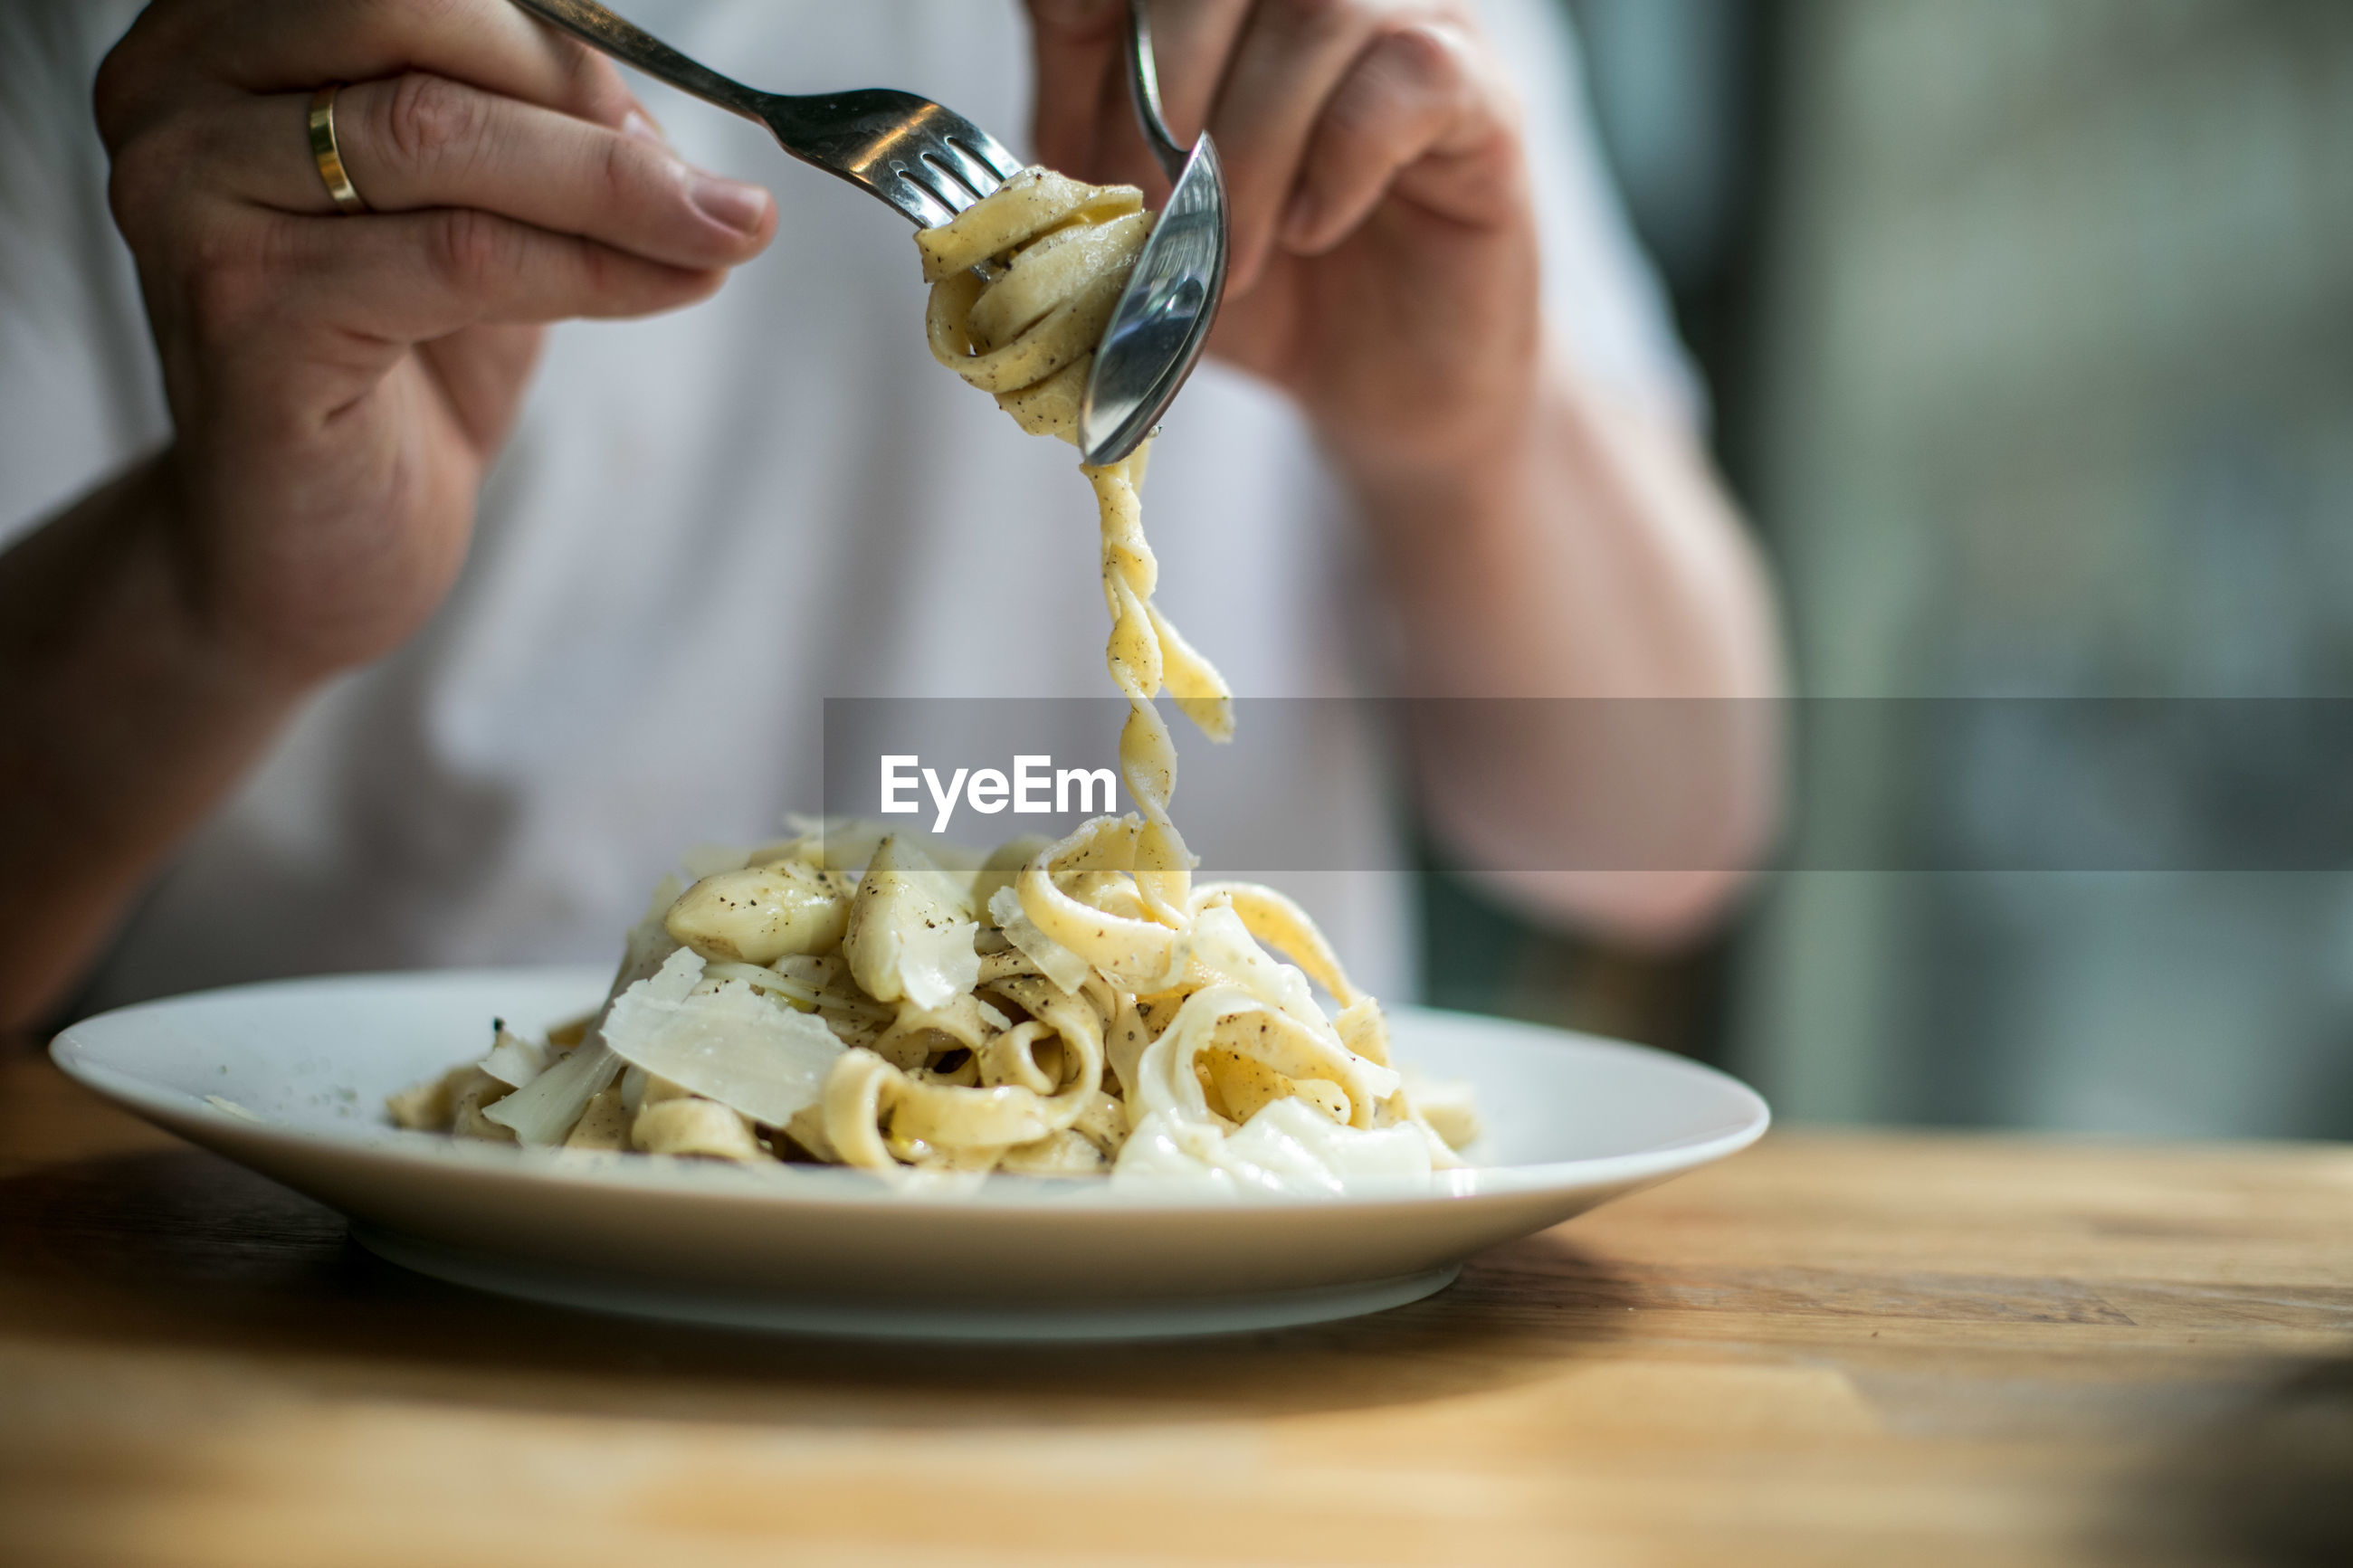 Midsection of person eating pasta